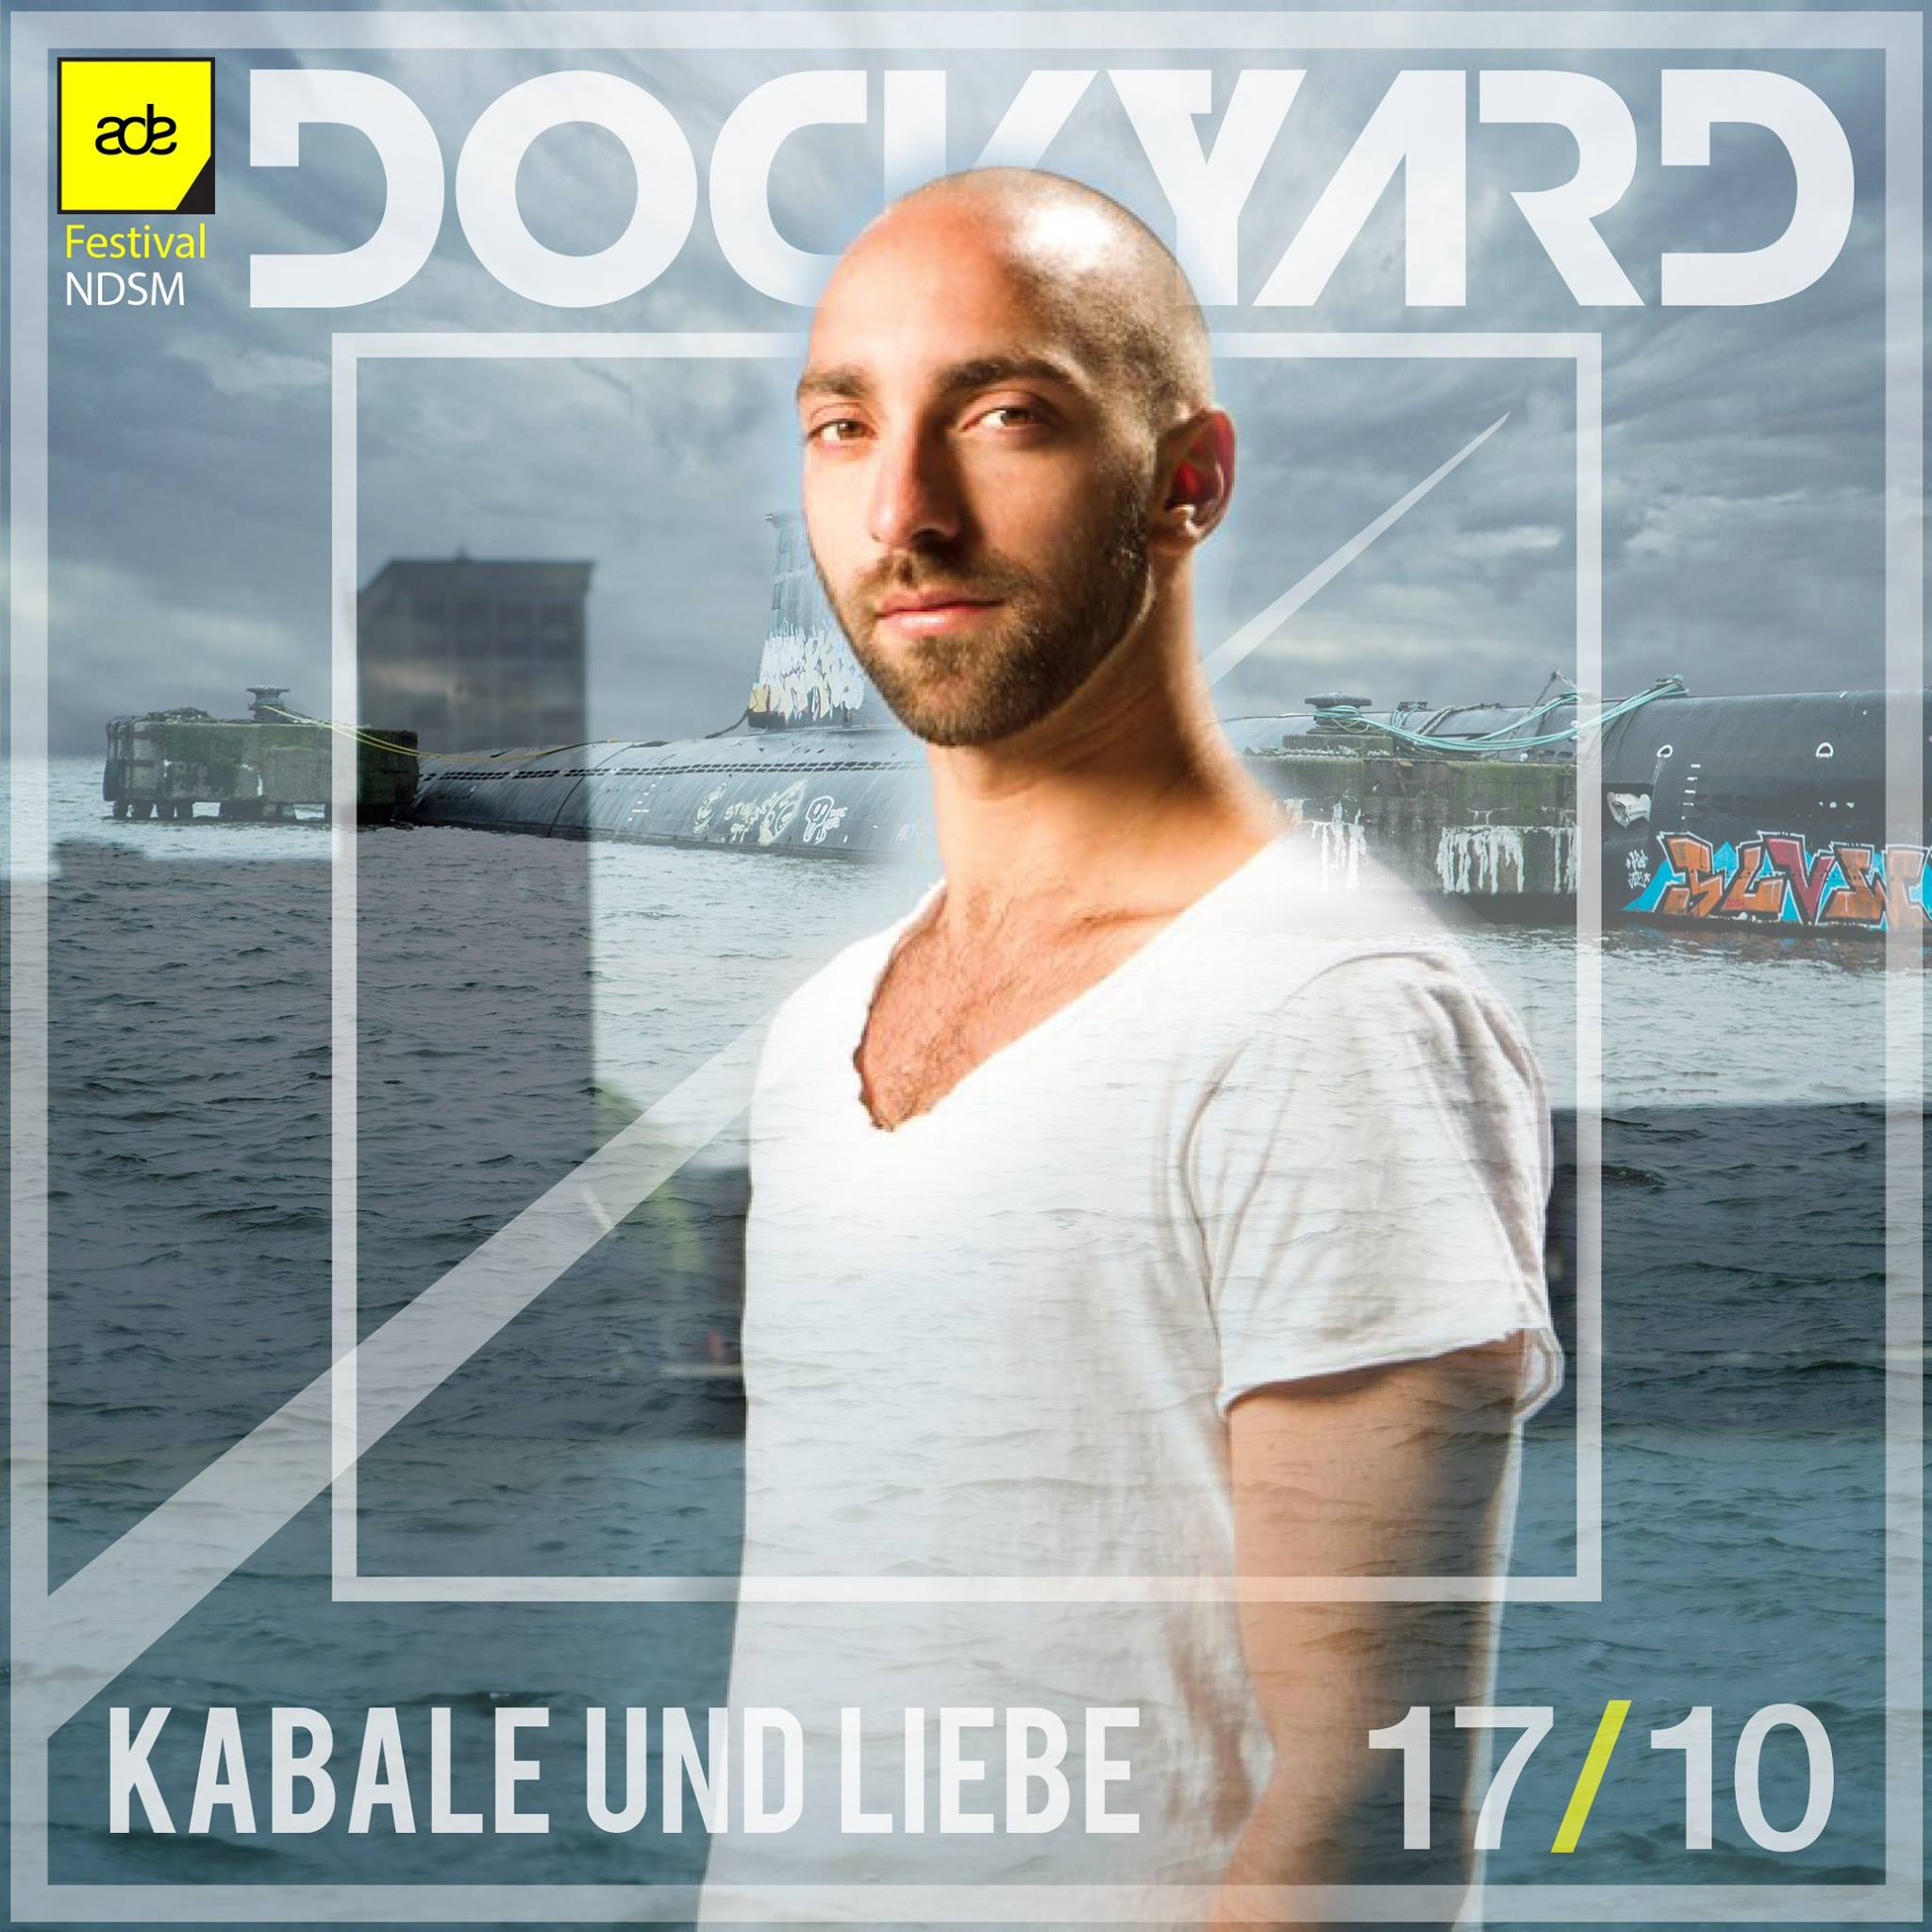 download → Kabale Und Liebe - live at Dockyard Festival, FACT Stage, NDSM Docklands, ADE 2015 - 17-Oct-2015